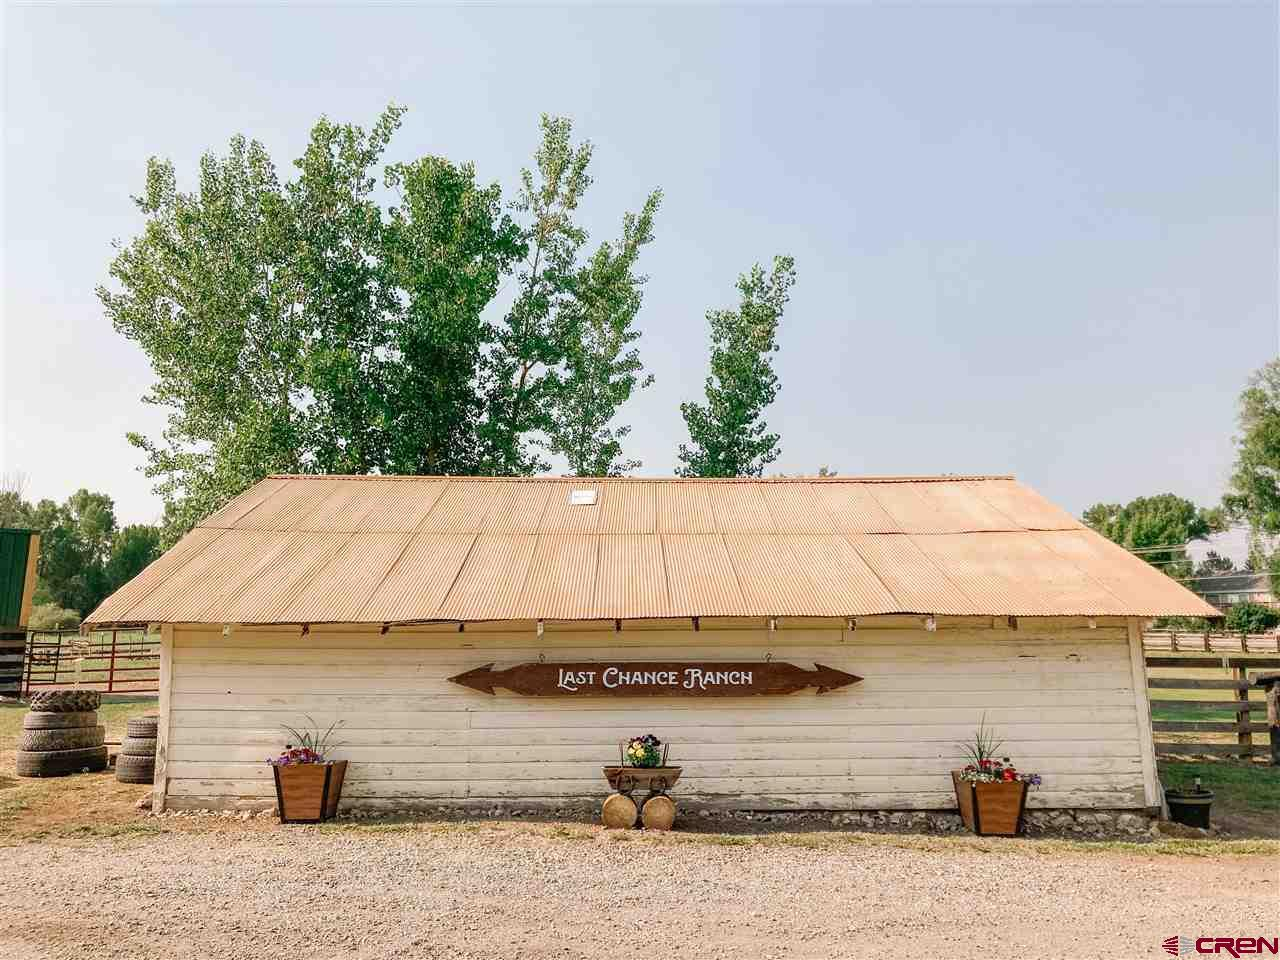 """All the city has to offer in a """"rural"""" package! This undeveloped jewel tucked into the city of Montrose is just an easy walk to the state-of-the-art Rec Center and shopping. An historic 1910 home rests among 100-year-old cottonwood trees on 10.5-acres with views, gently rolling pasture, and ample UVWUA water rights to keep it all green and maintain the two ponds.  This retreat is surrounded by the illustrious subdivisions of Otter Pond, The Brook and Wildwood, making it one of the premier rural/city locations of the Western Slope and an ideal spot to build your own estate home. The existing 1264 square foot 3 bedroom, 1 ¾ bath, two story farmhouse sits in a beautifully landscaped and tree filled yard.  The charming home is tastefully decorated and reflects the architecture and lifestyles of days gone by.  The shaded south facing porch provides plenty of room for outdoor entertaining and relaxing during the warm summer nights. Speaking of lifestyle, the current owners fully enjoy an equestrian lifestyle, and the property is complete with all you need, including a 3-stall shaded barn with riding arena and tack shed."""